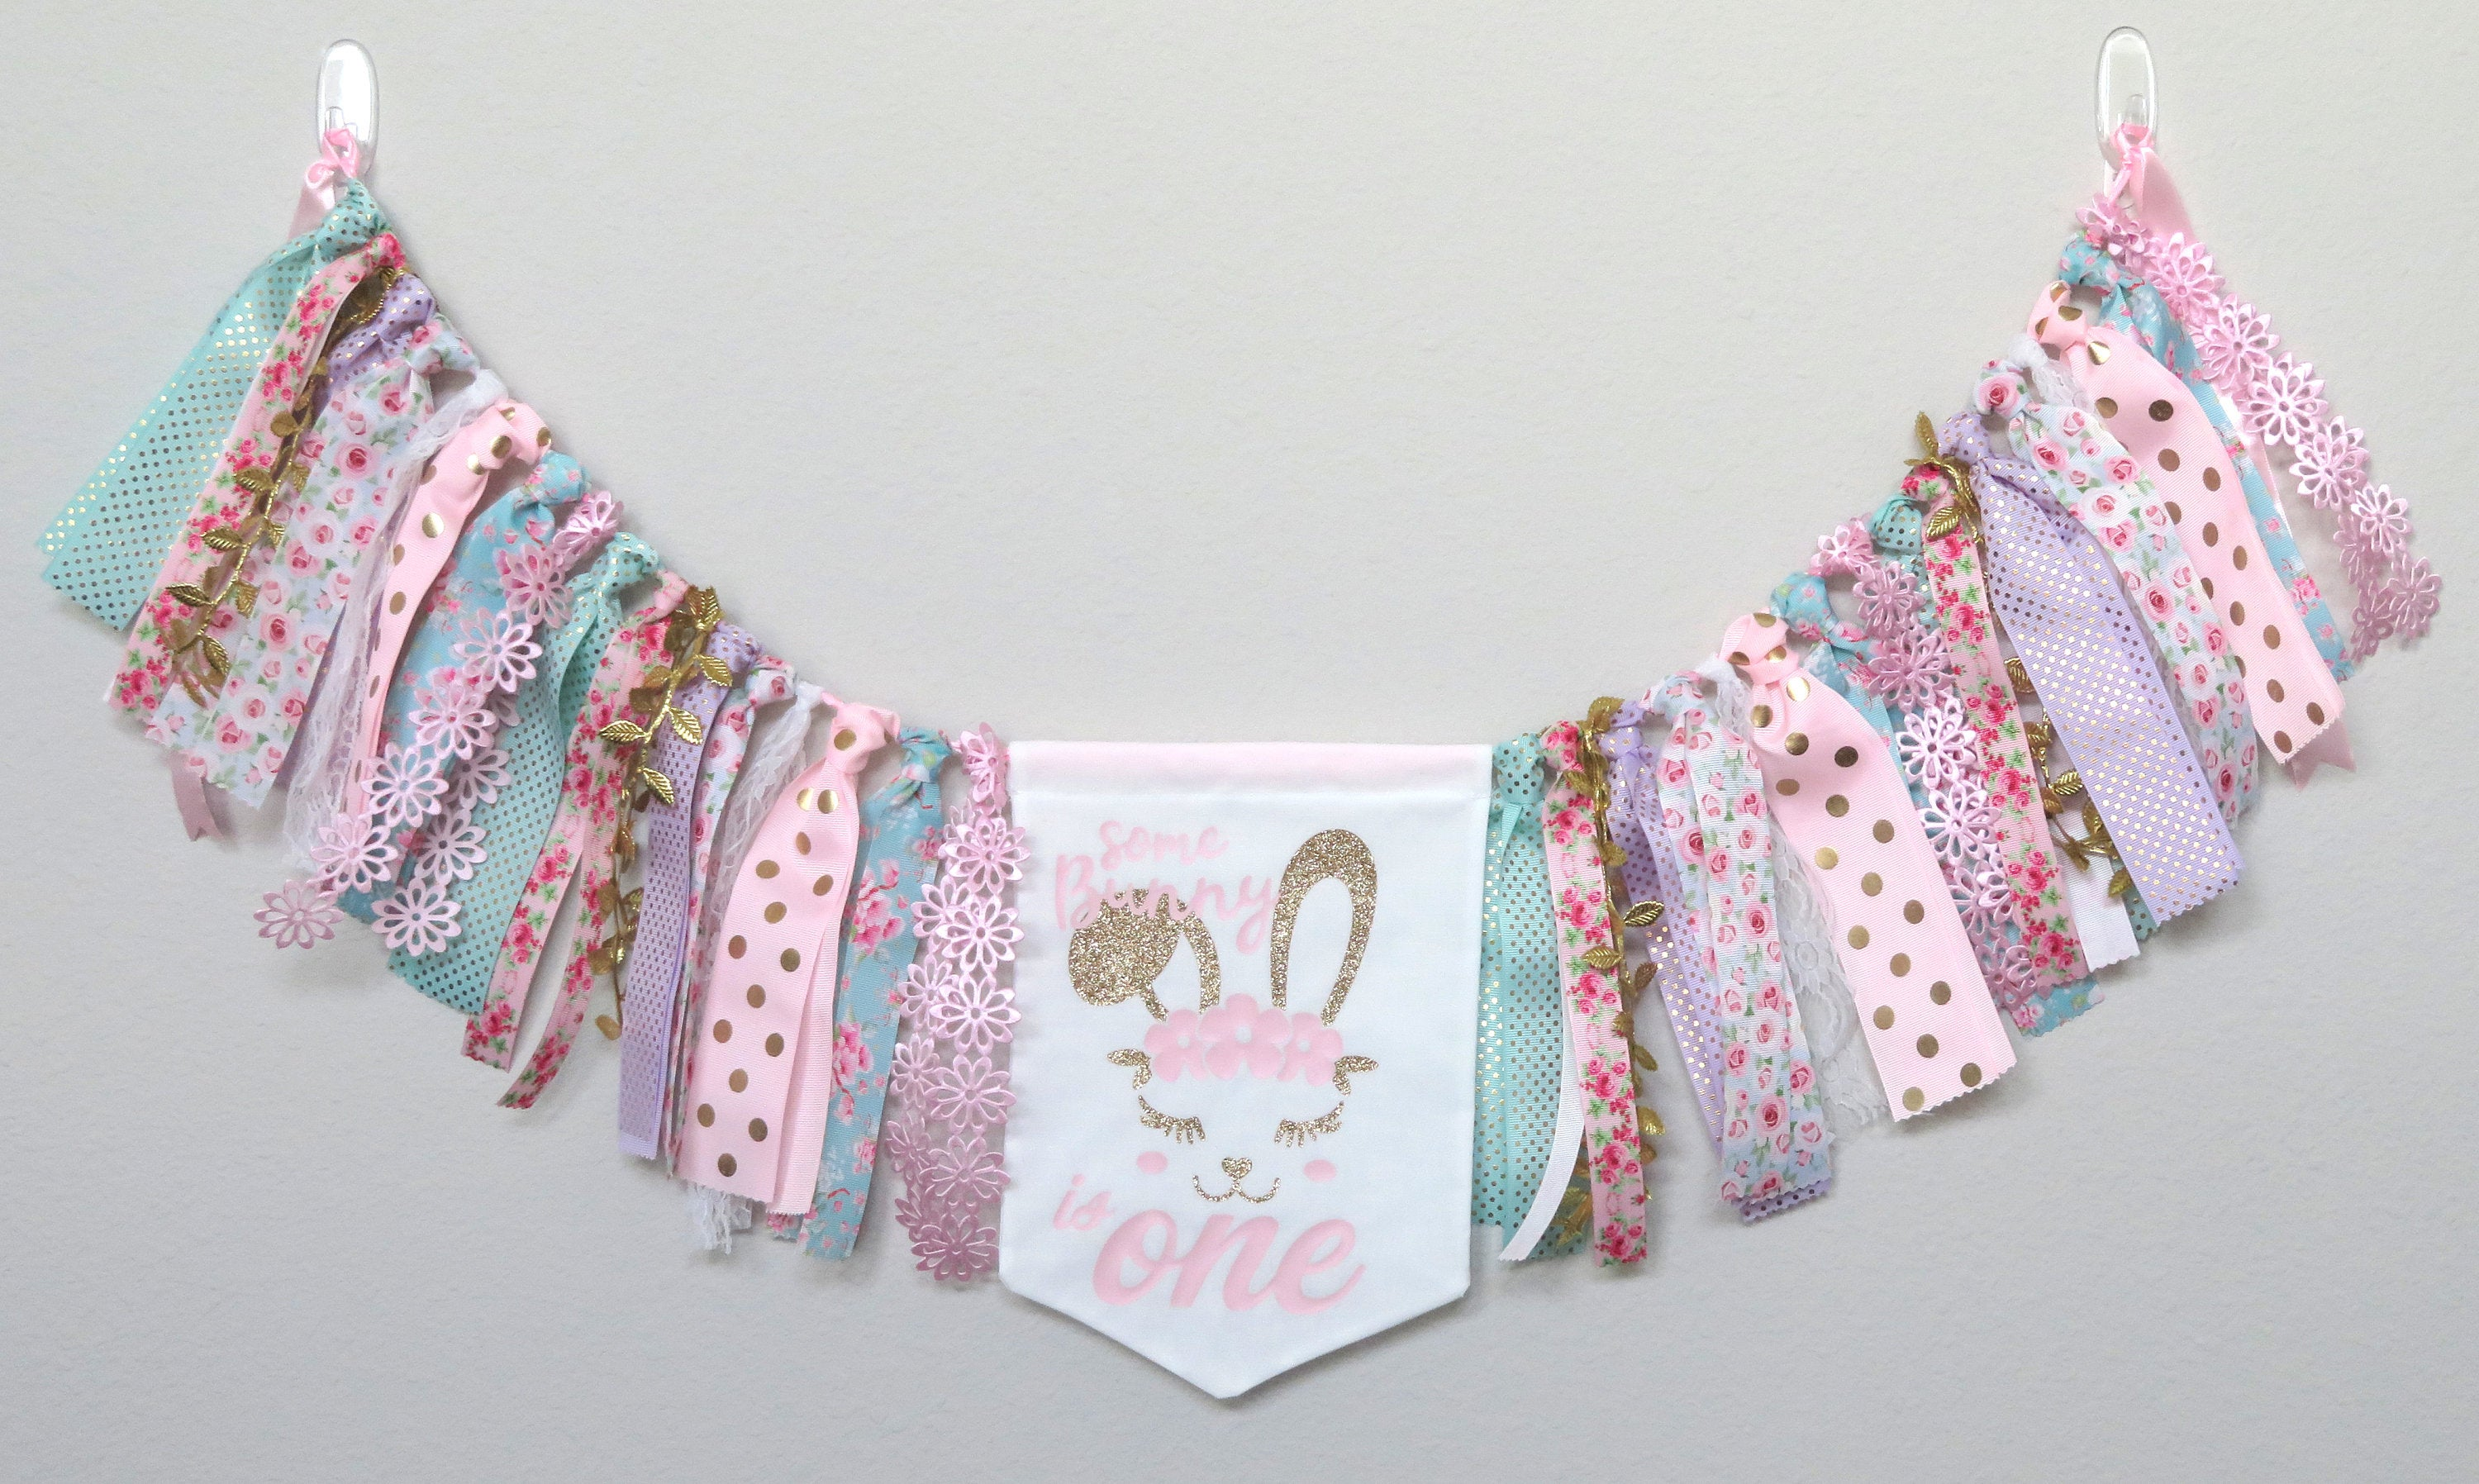 Some Bunny is One Birthday Banner for First Birthday Party - wall banner, bunny party decor, bunny 1st birthday girl, bunny birthday banner